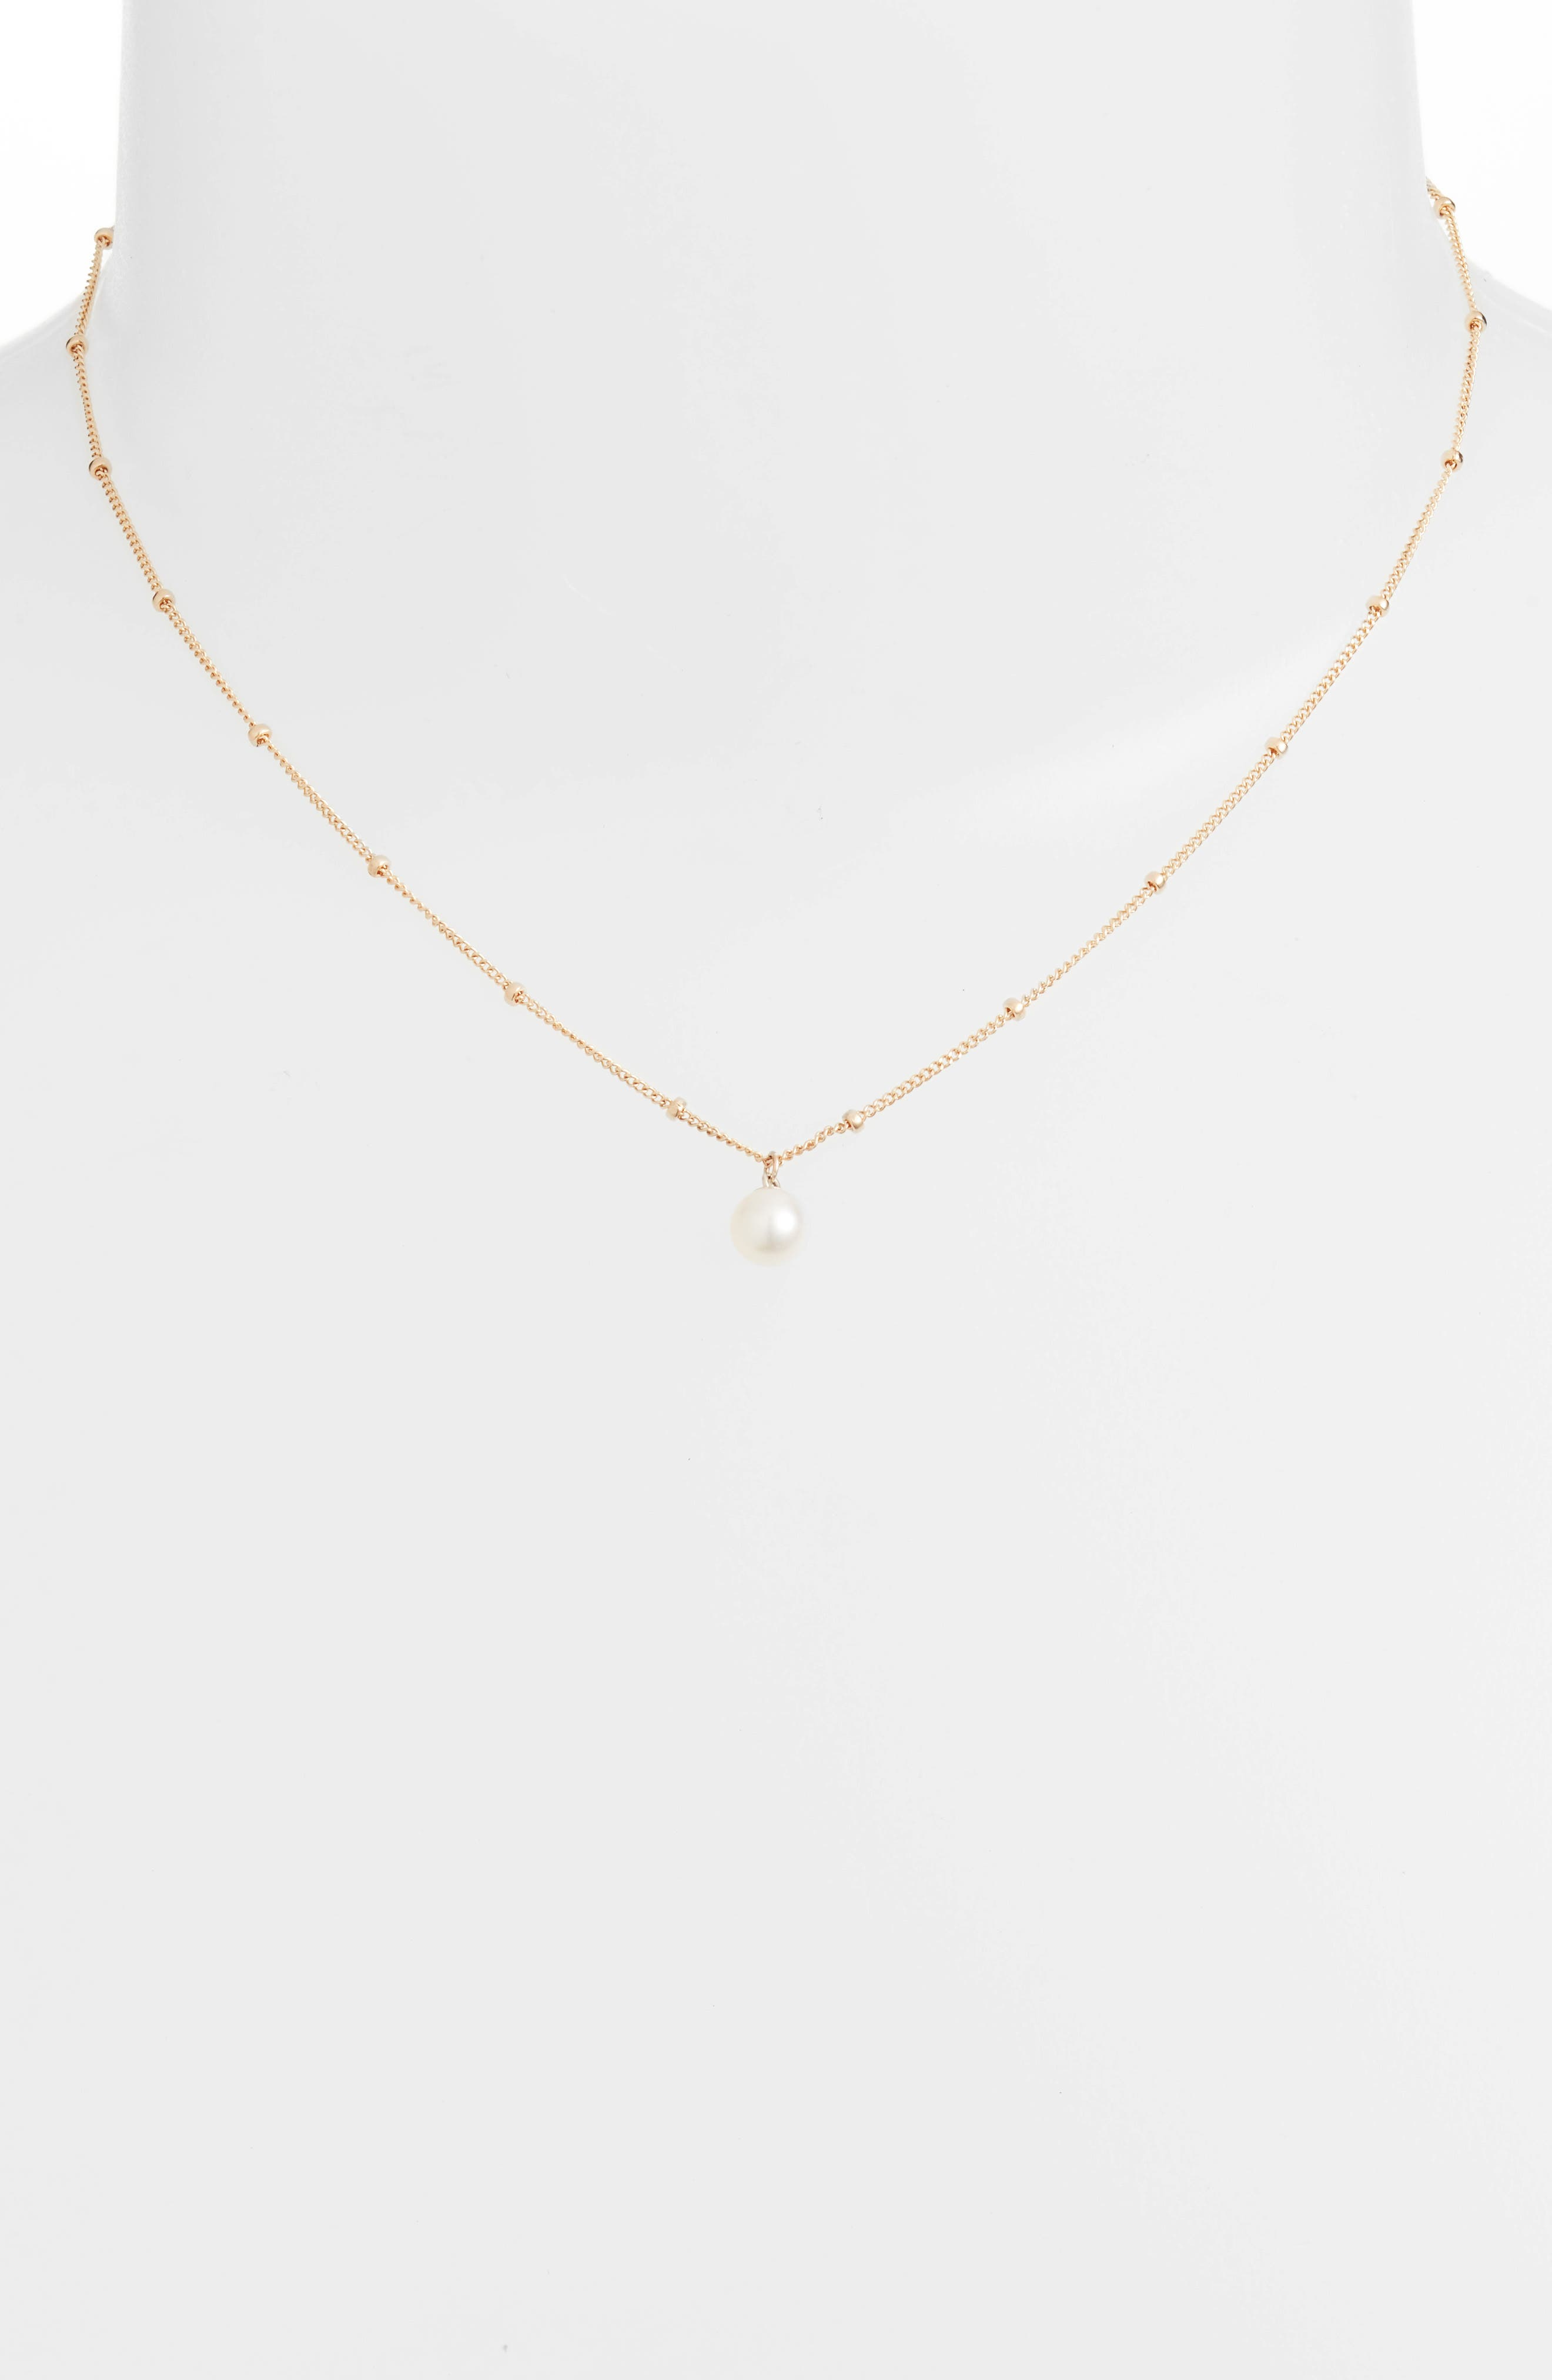 Baby Pearl Bead Choker Necklace,                             Alternate thumbnail 2, color,                             YELLOW GOLD/ WHITE PEARL